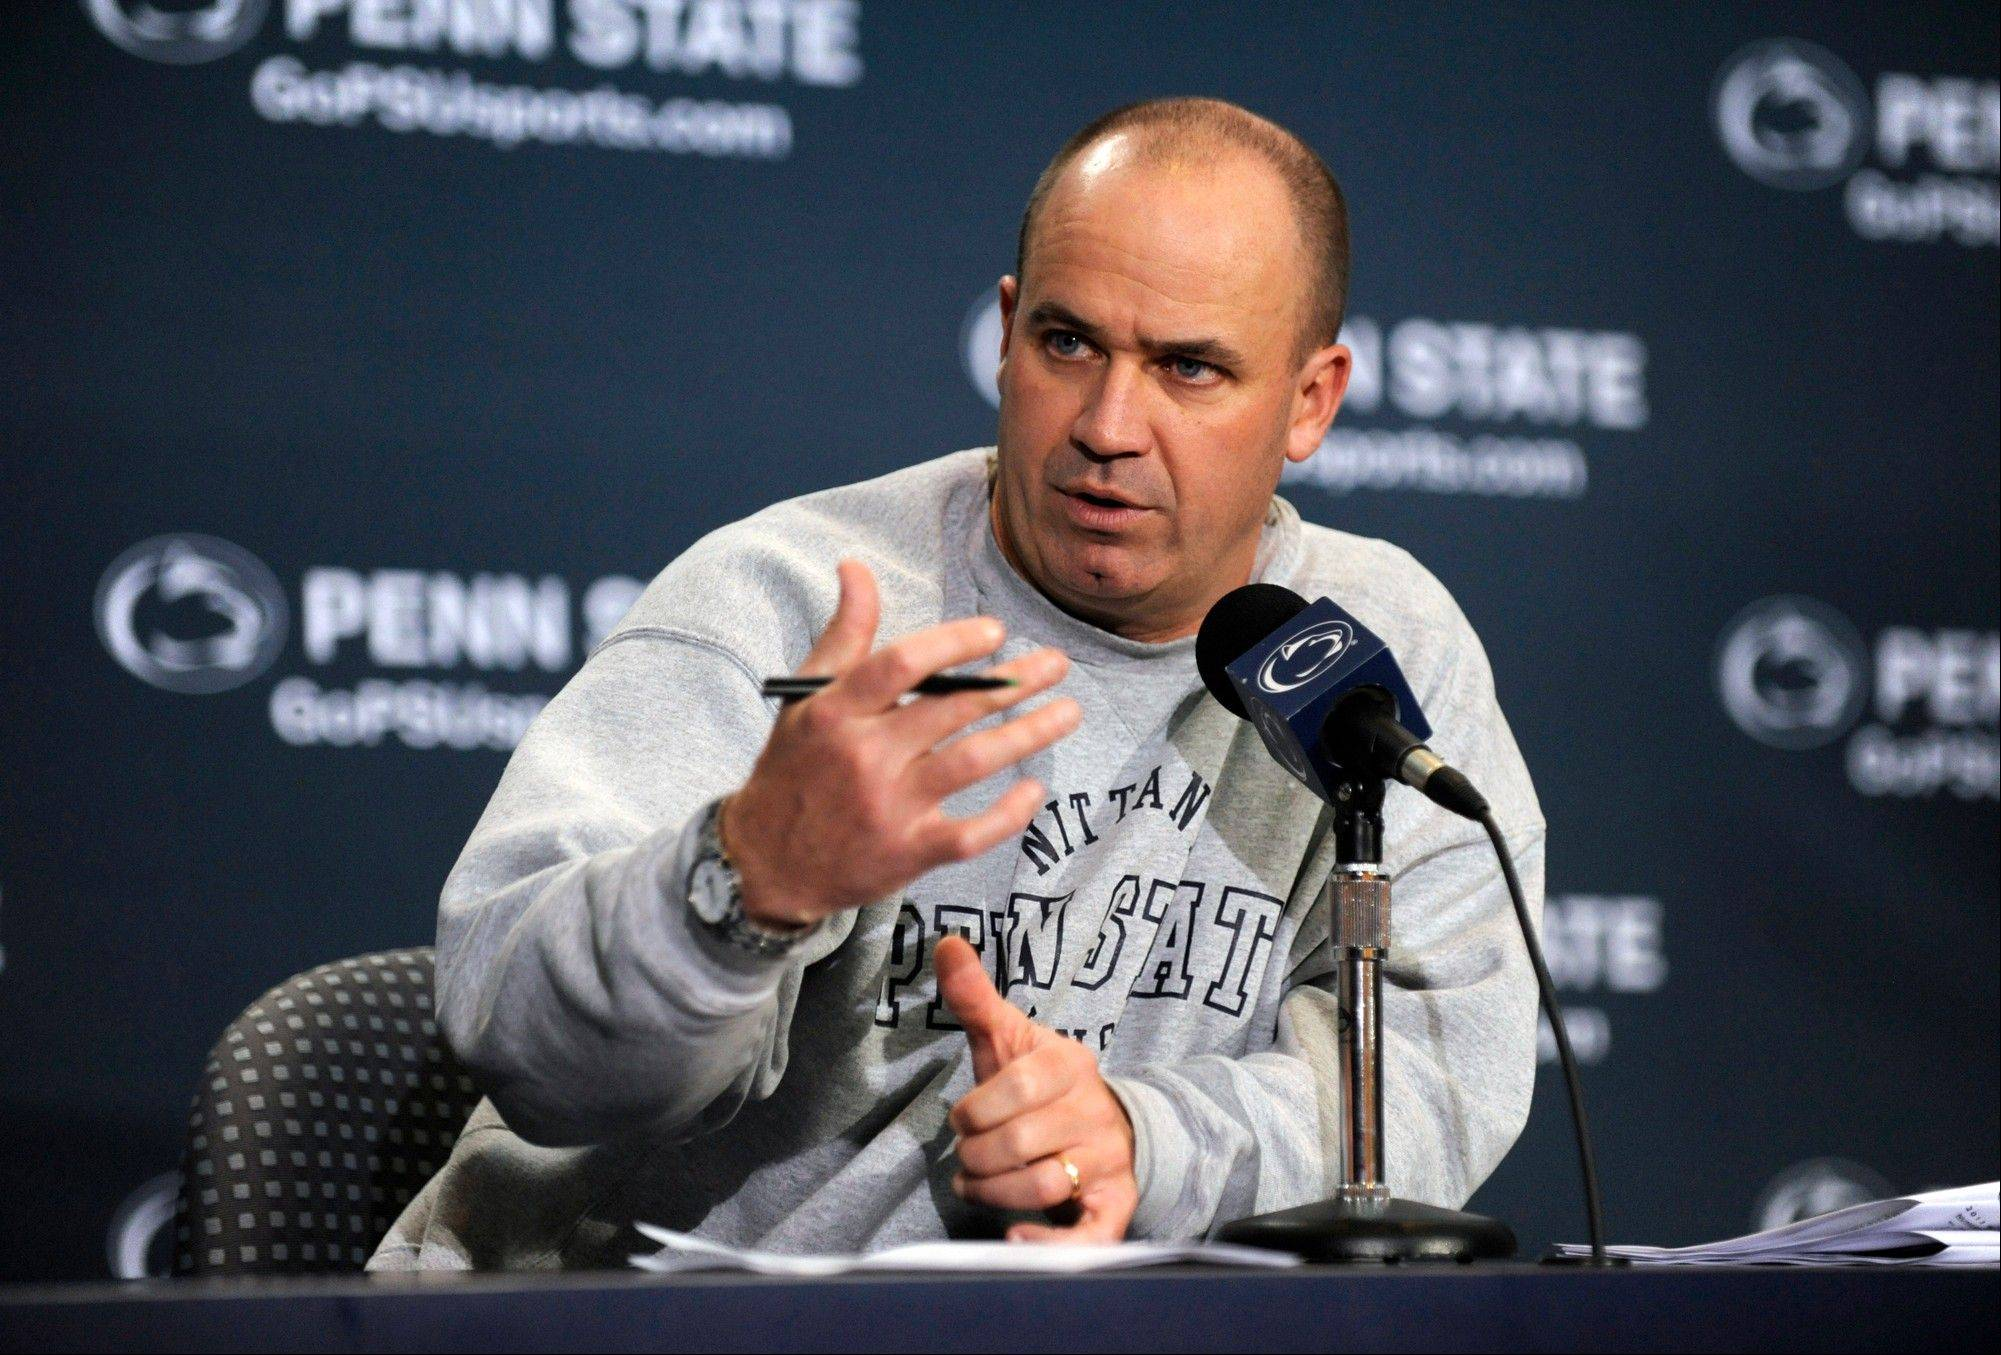 Penn State coach Bill O�Brien speaks at his weekly news conference Tuesday in State College, Pa. Penn State plays Michigan on Saturday at home